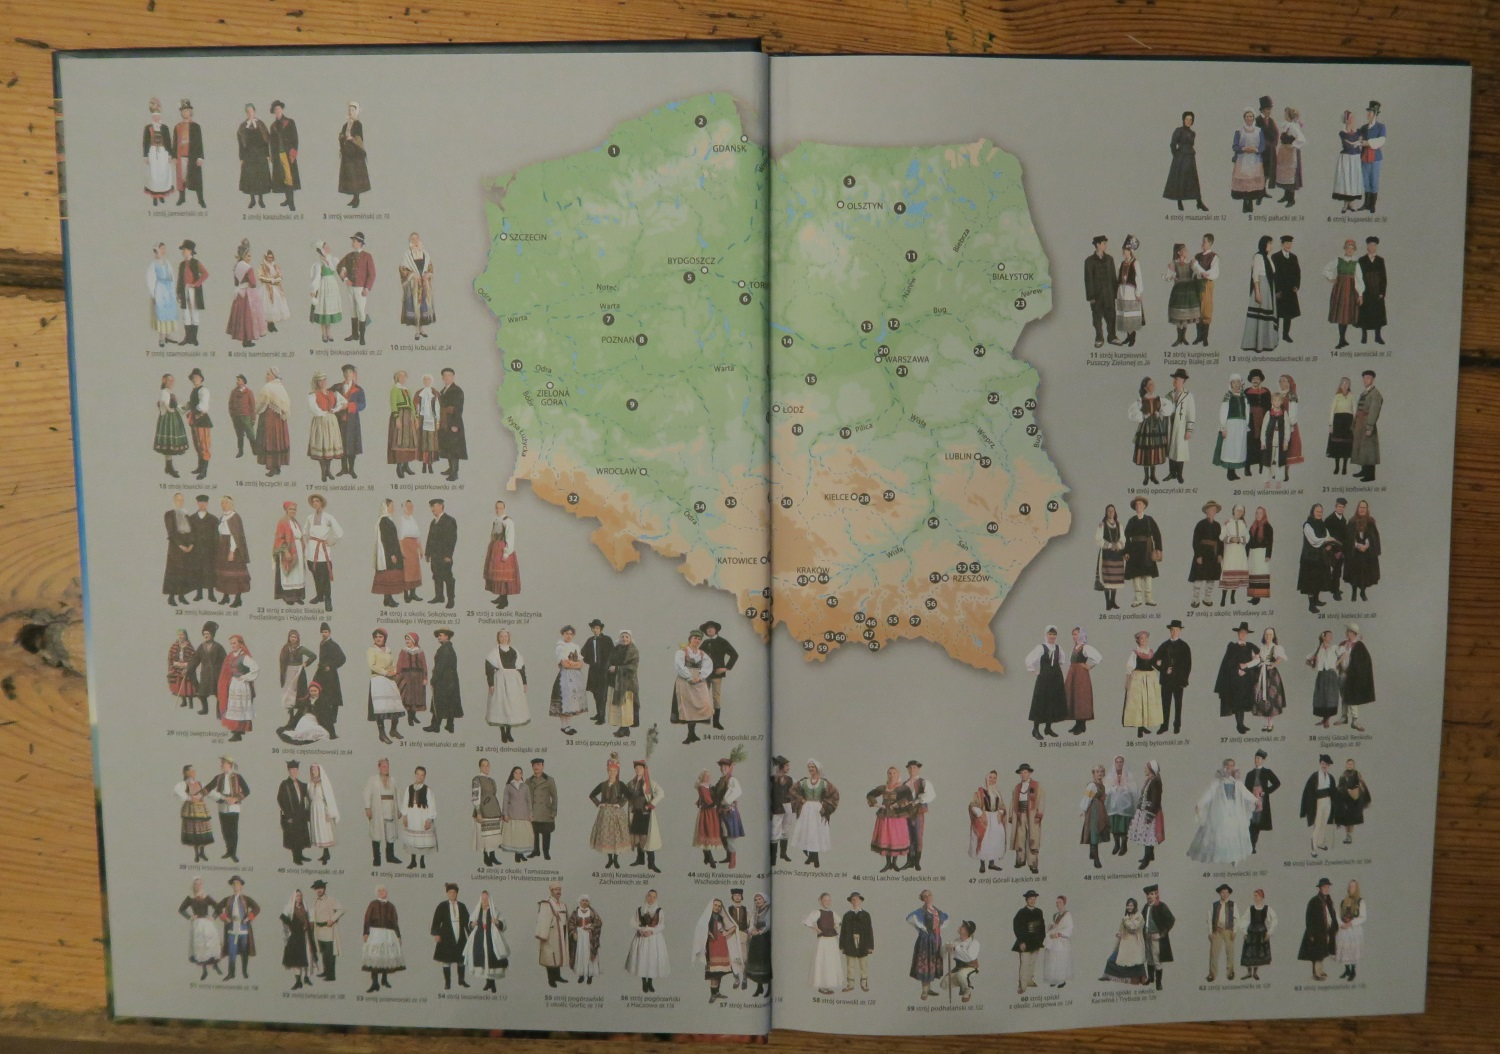 The picture in the middle is the map of Poland - and the various folk outfits that were typically found all over this varied country. We'll examine them one by one.